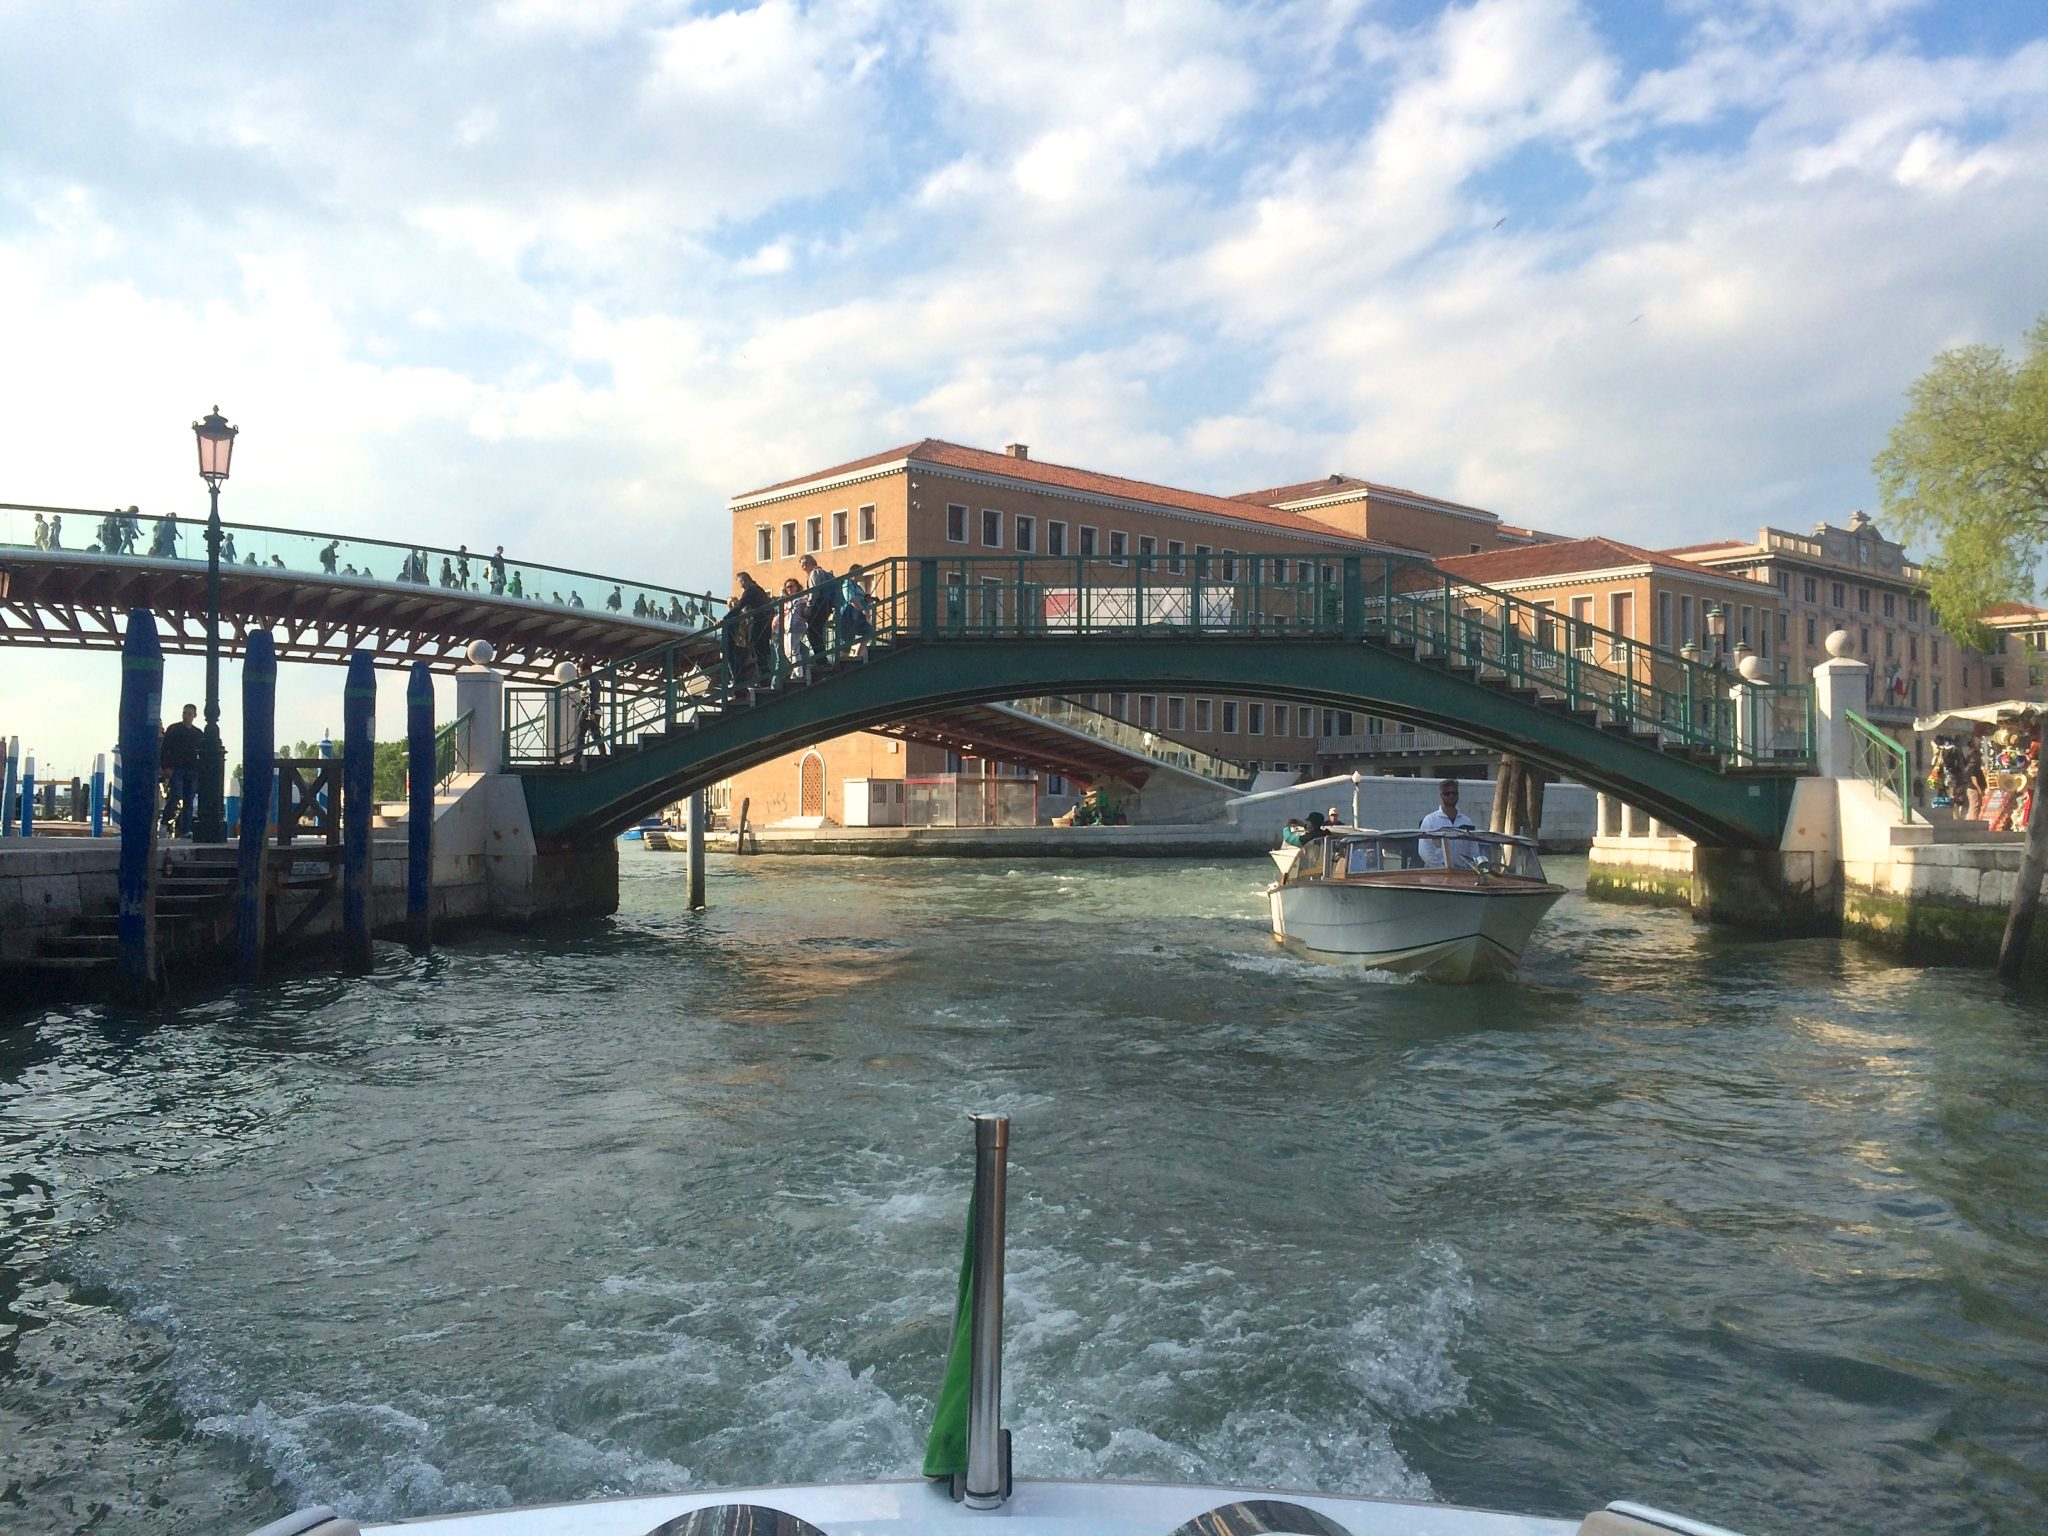 Our First Day in Venice